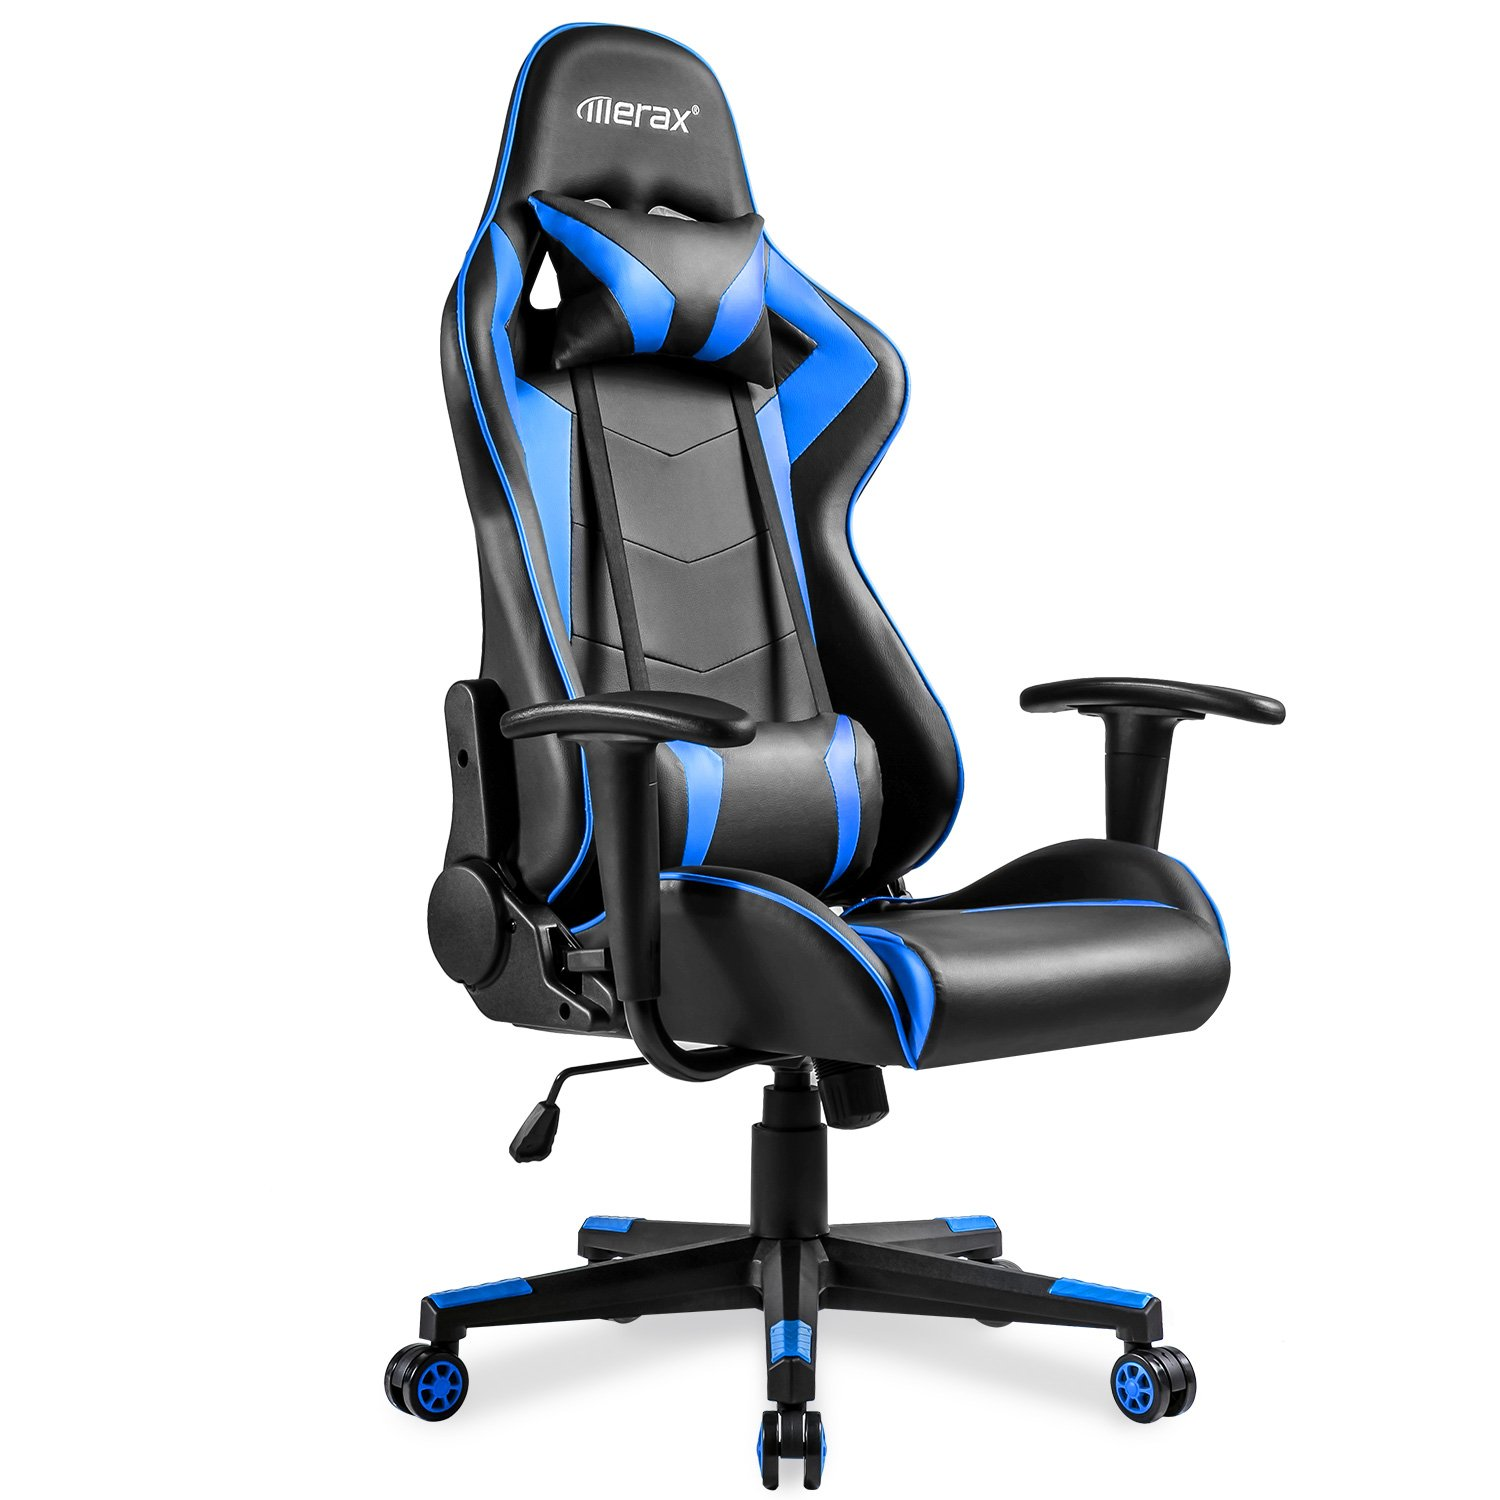 Merax High-Back Gaming Chair Ergonomic Design Office Chair Racing Style Computer Chair (Black and Blue)